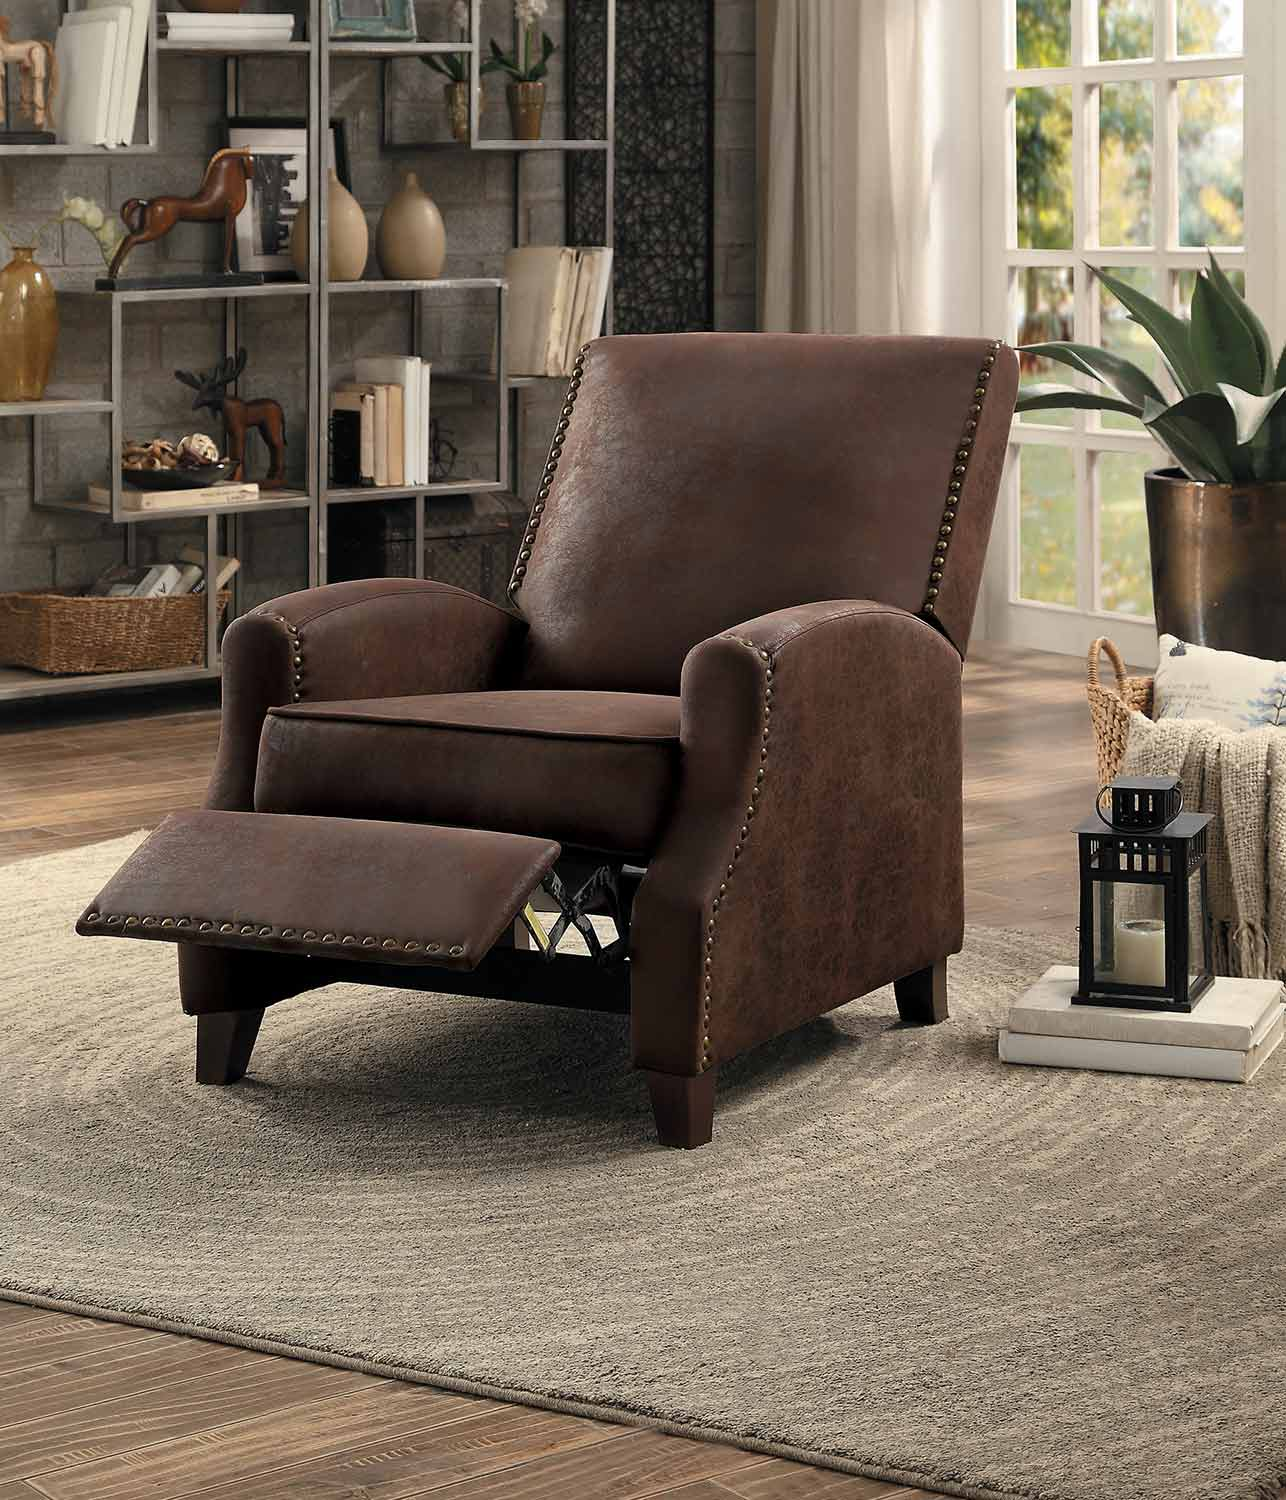 Homelegance Walden Push Back Reclining Chair - Brown Fabric